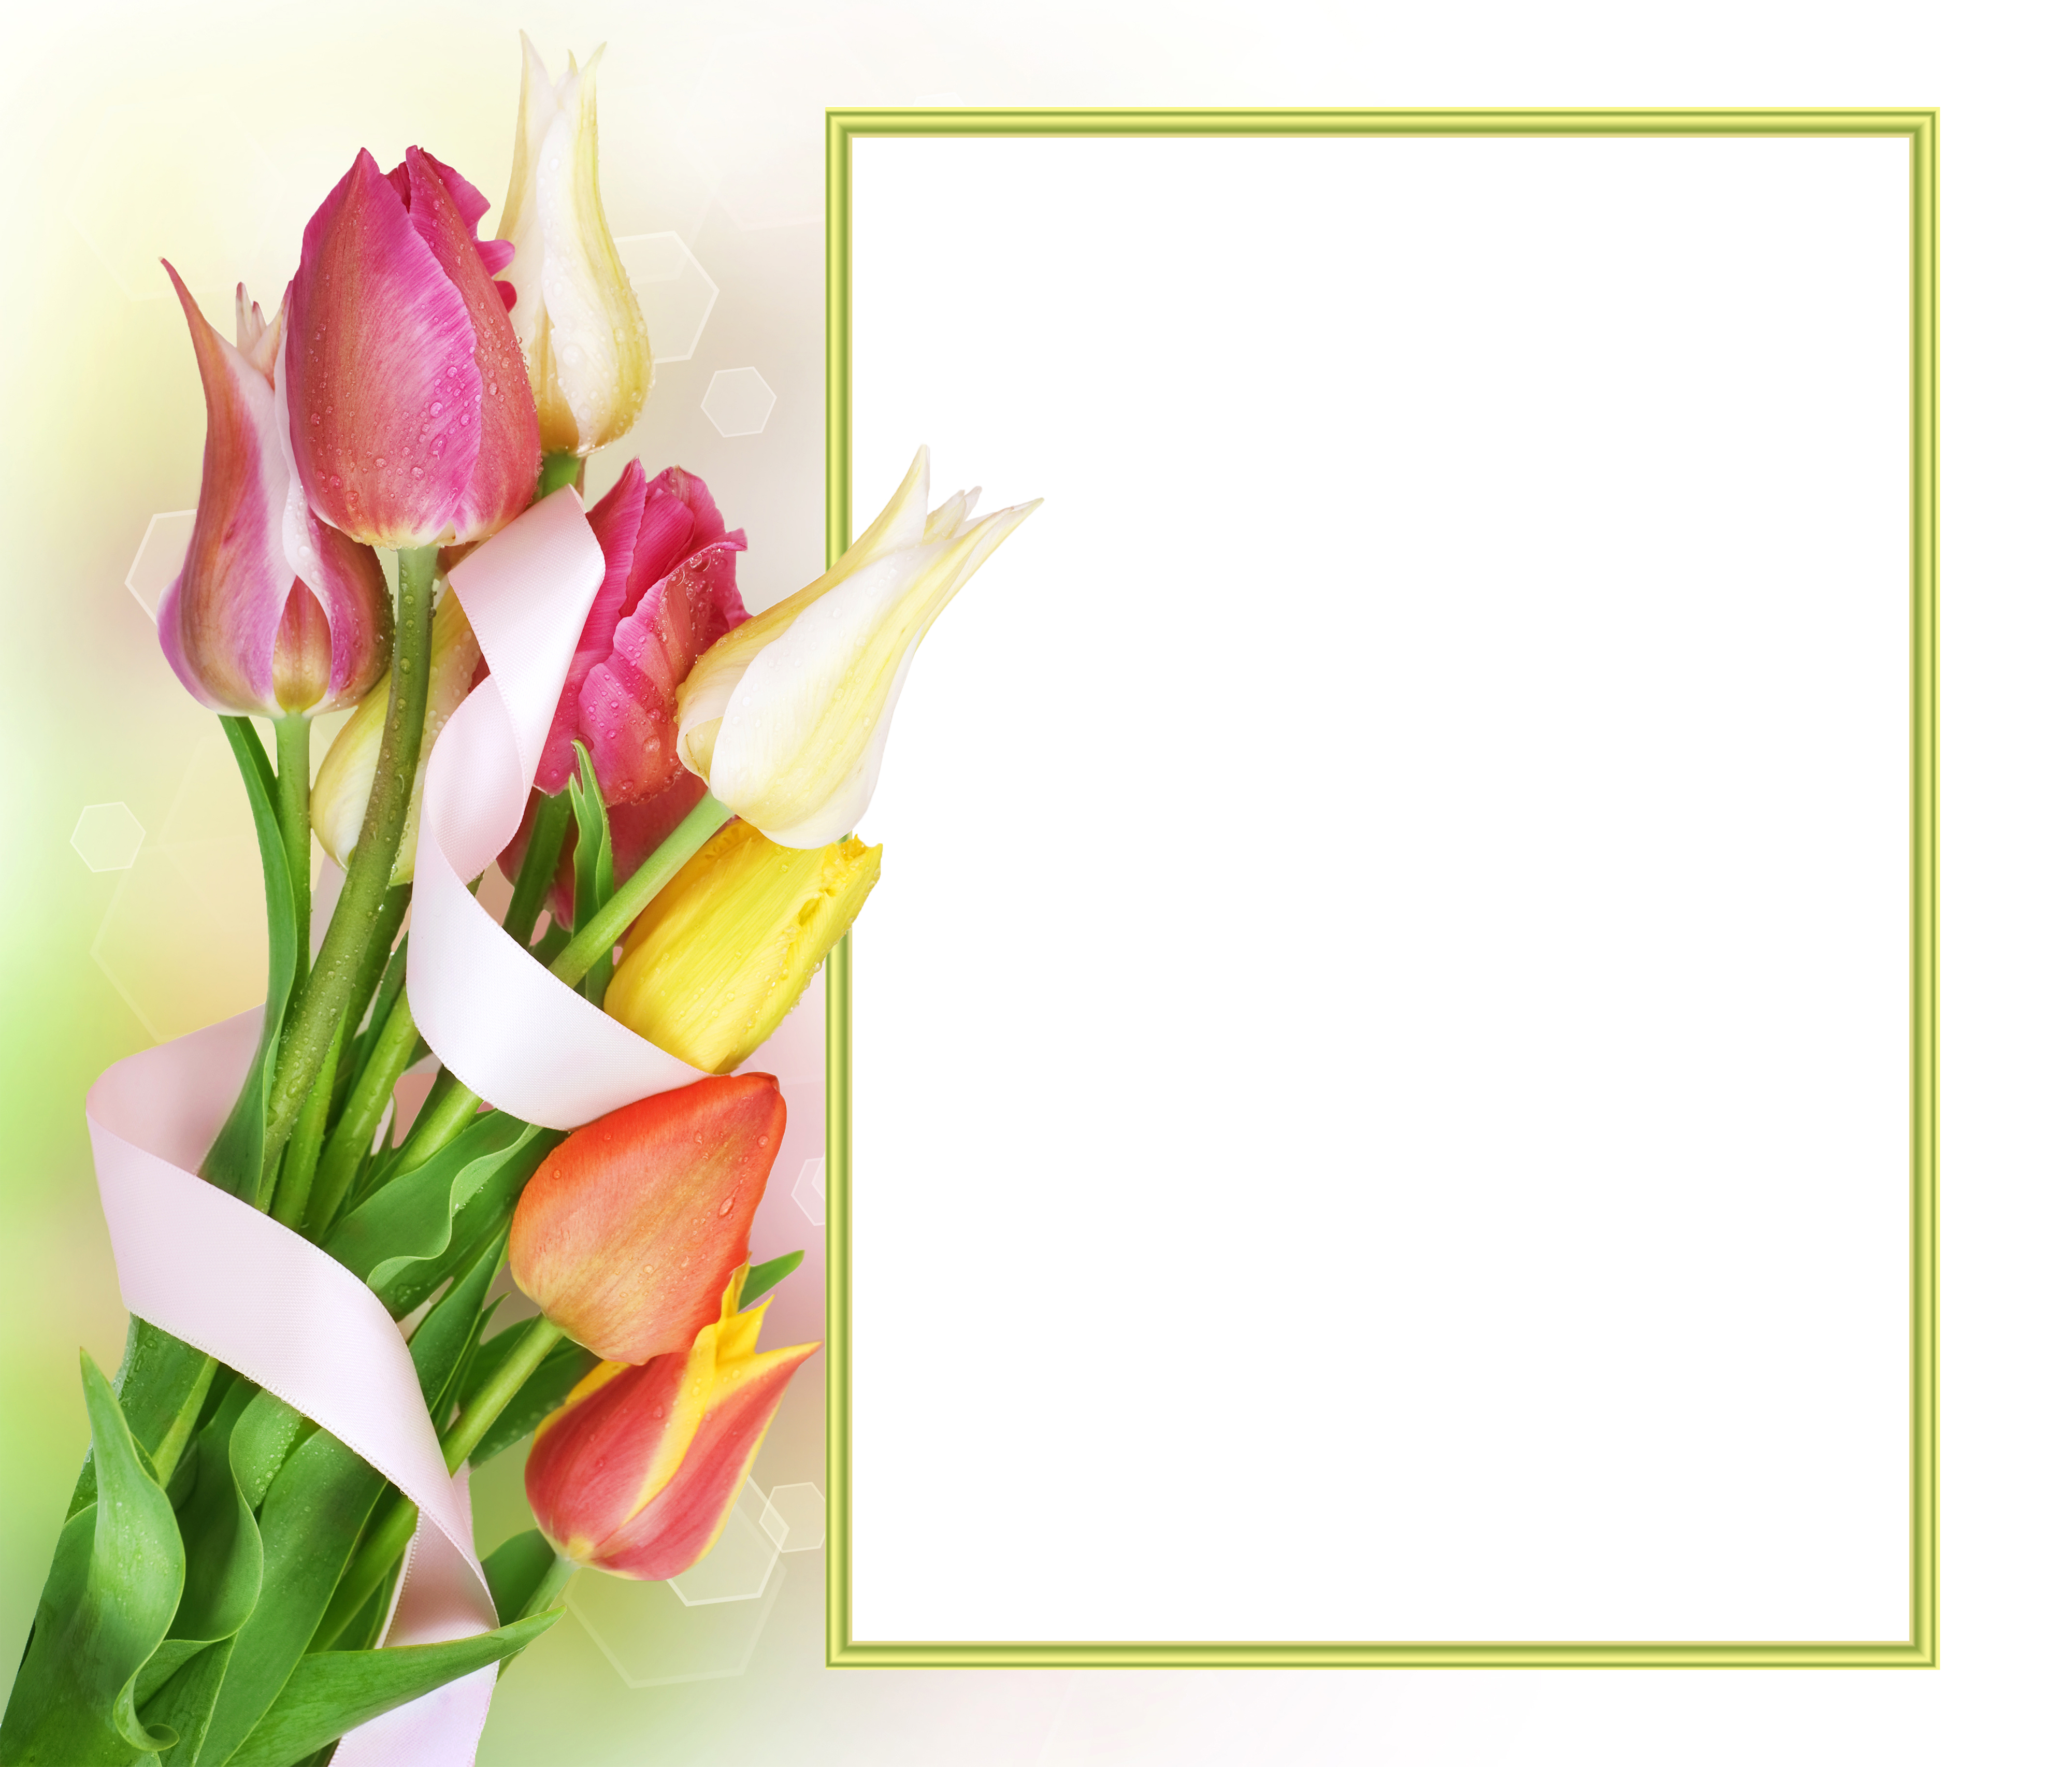 Of tulips cecila san tags flower field photoshop vintage tulips - Tulips Transparent Png Photo Frame